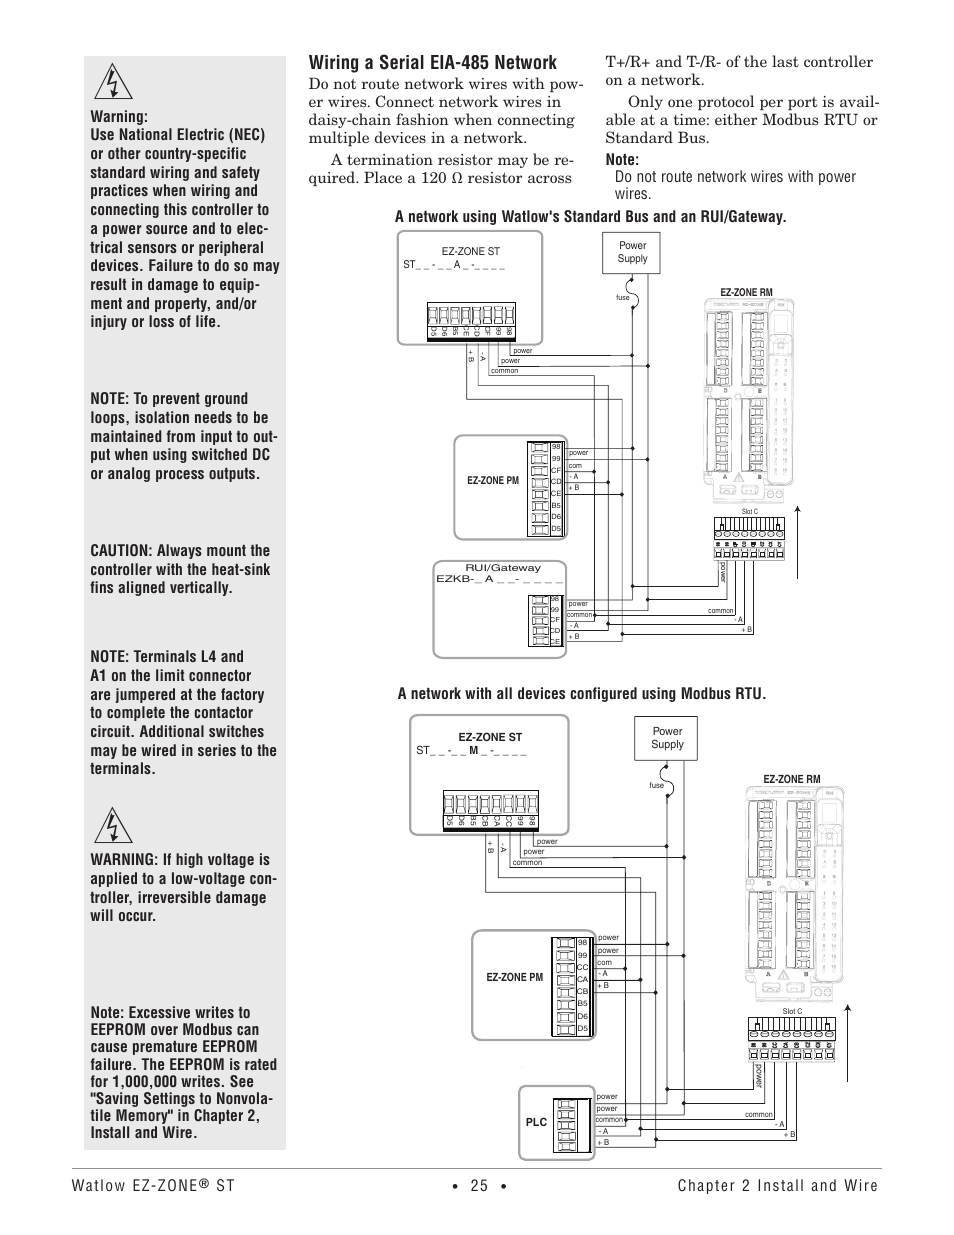 wiring a serial eia 485 network watlow ez zone st user manual Club Car Wiring Diagram